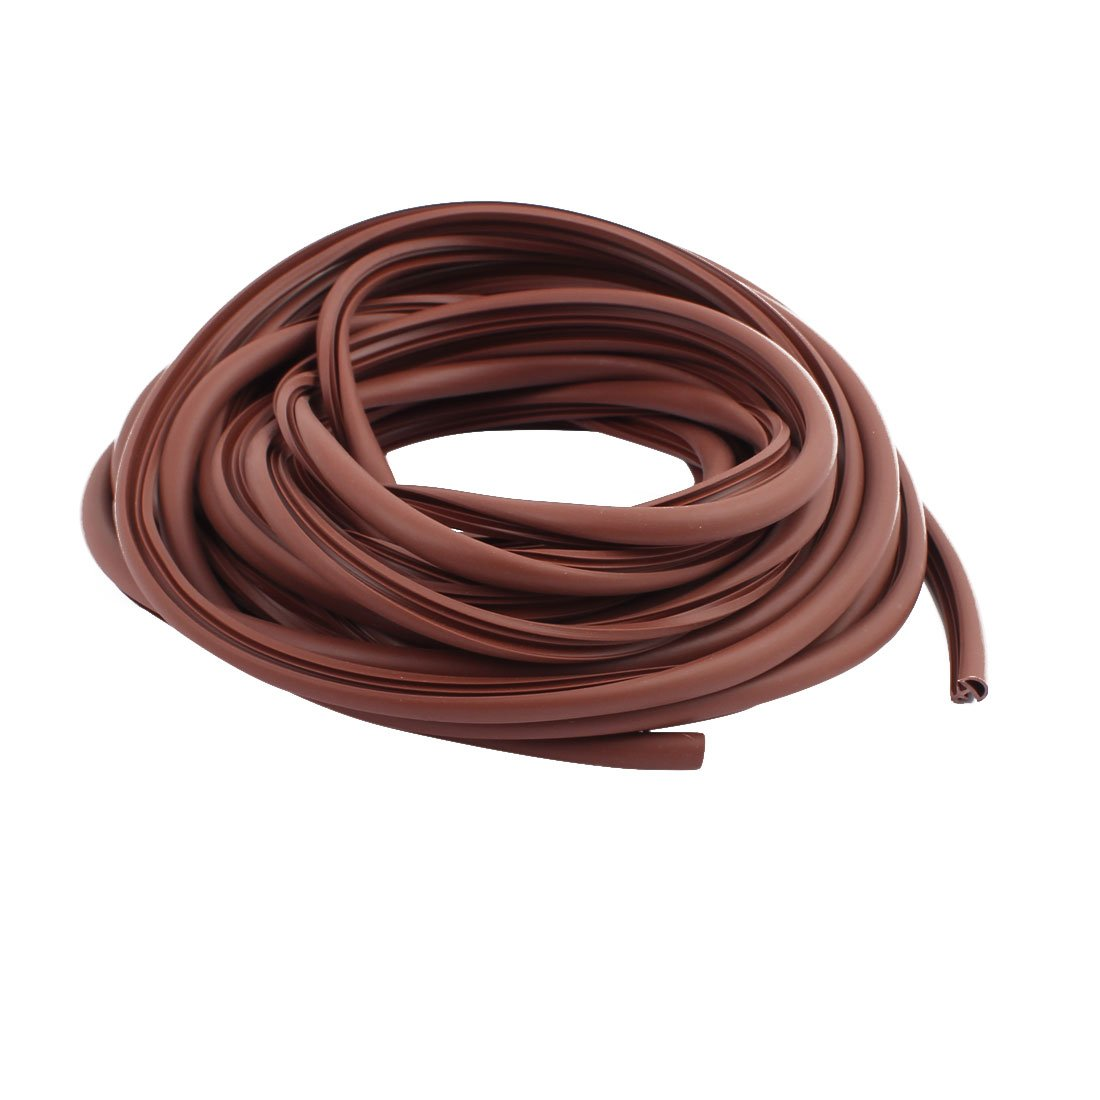 uxcell 8mm Width Rubber Door Window Glass Strip Seal Draught Excluder Brown 9M Length by uxcell